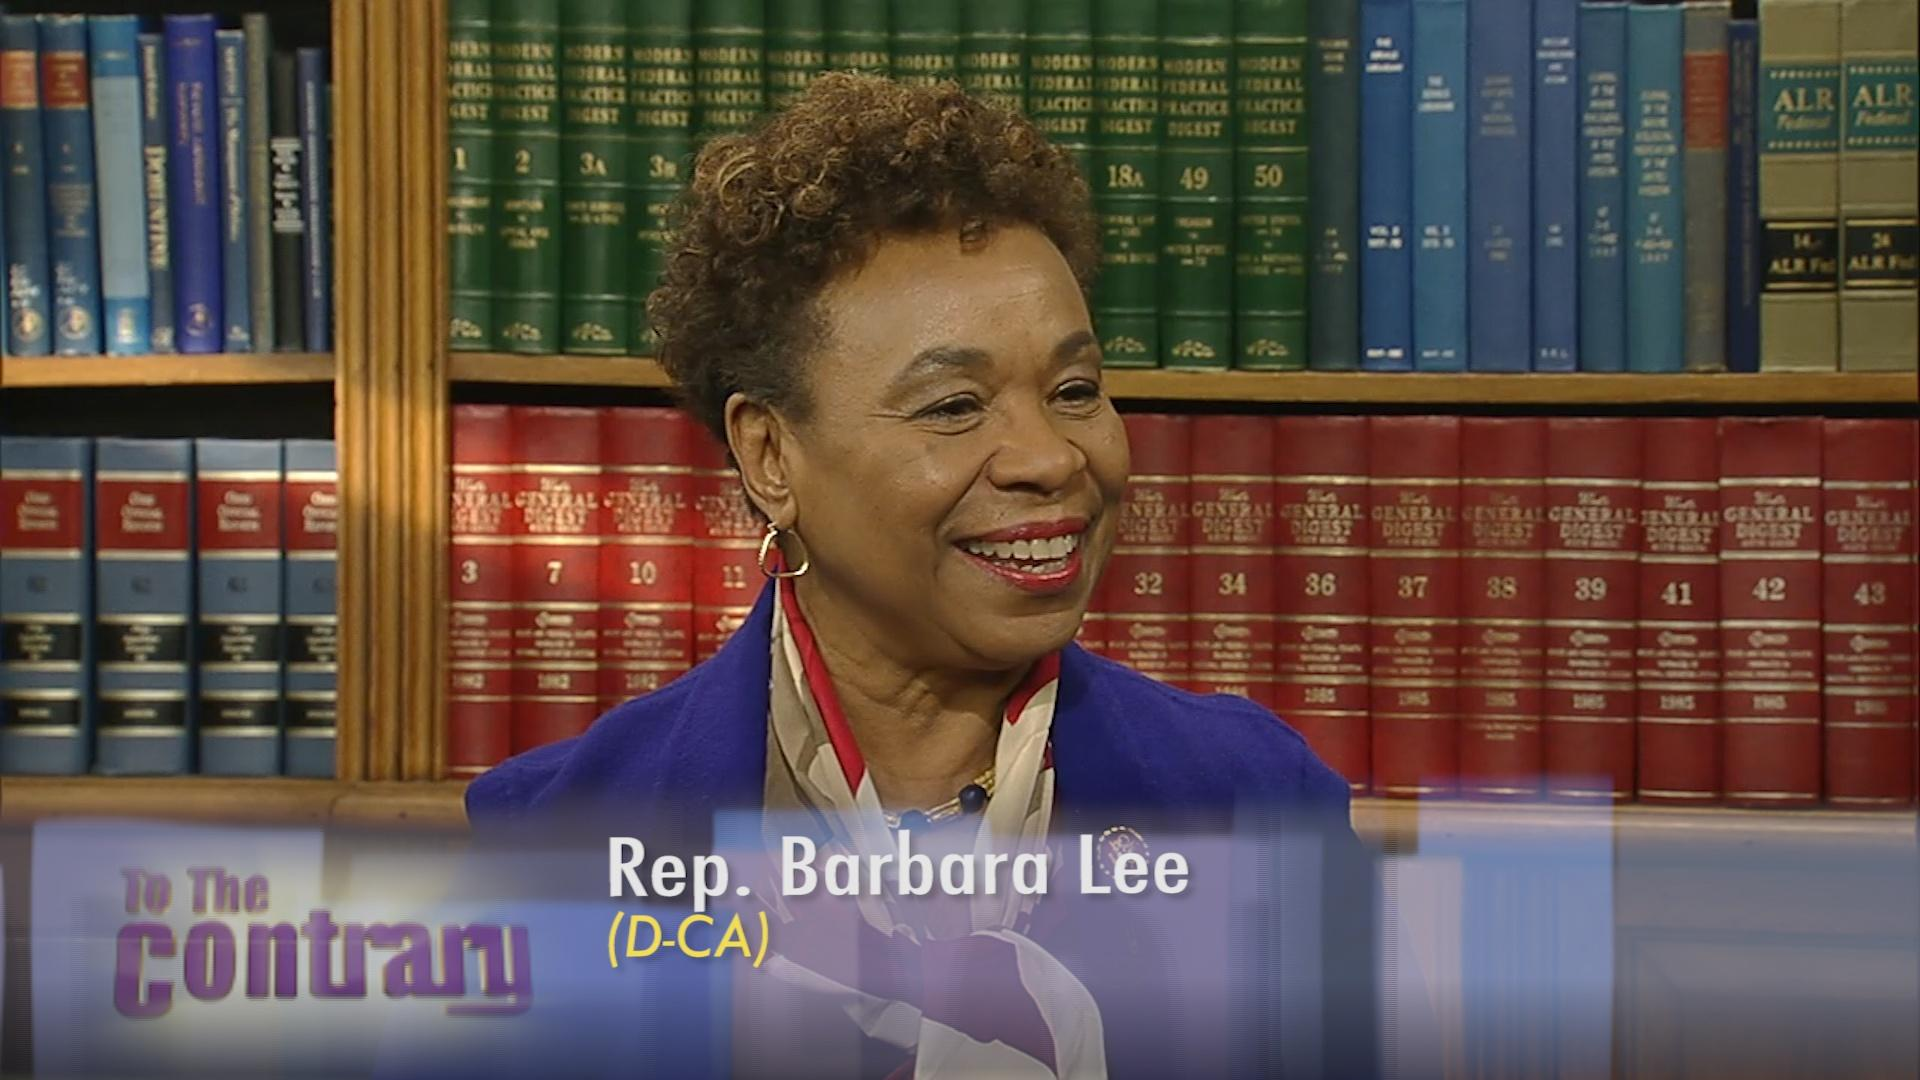 TTC Extra: Rep. Barbara Lee on Paycheck Fairness